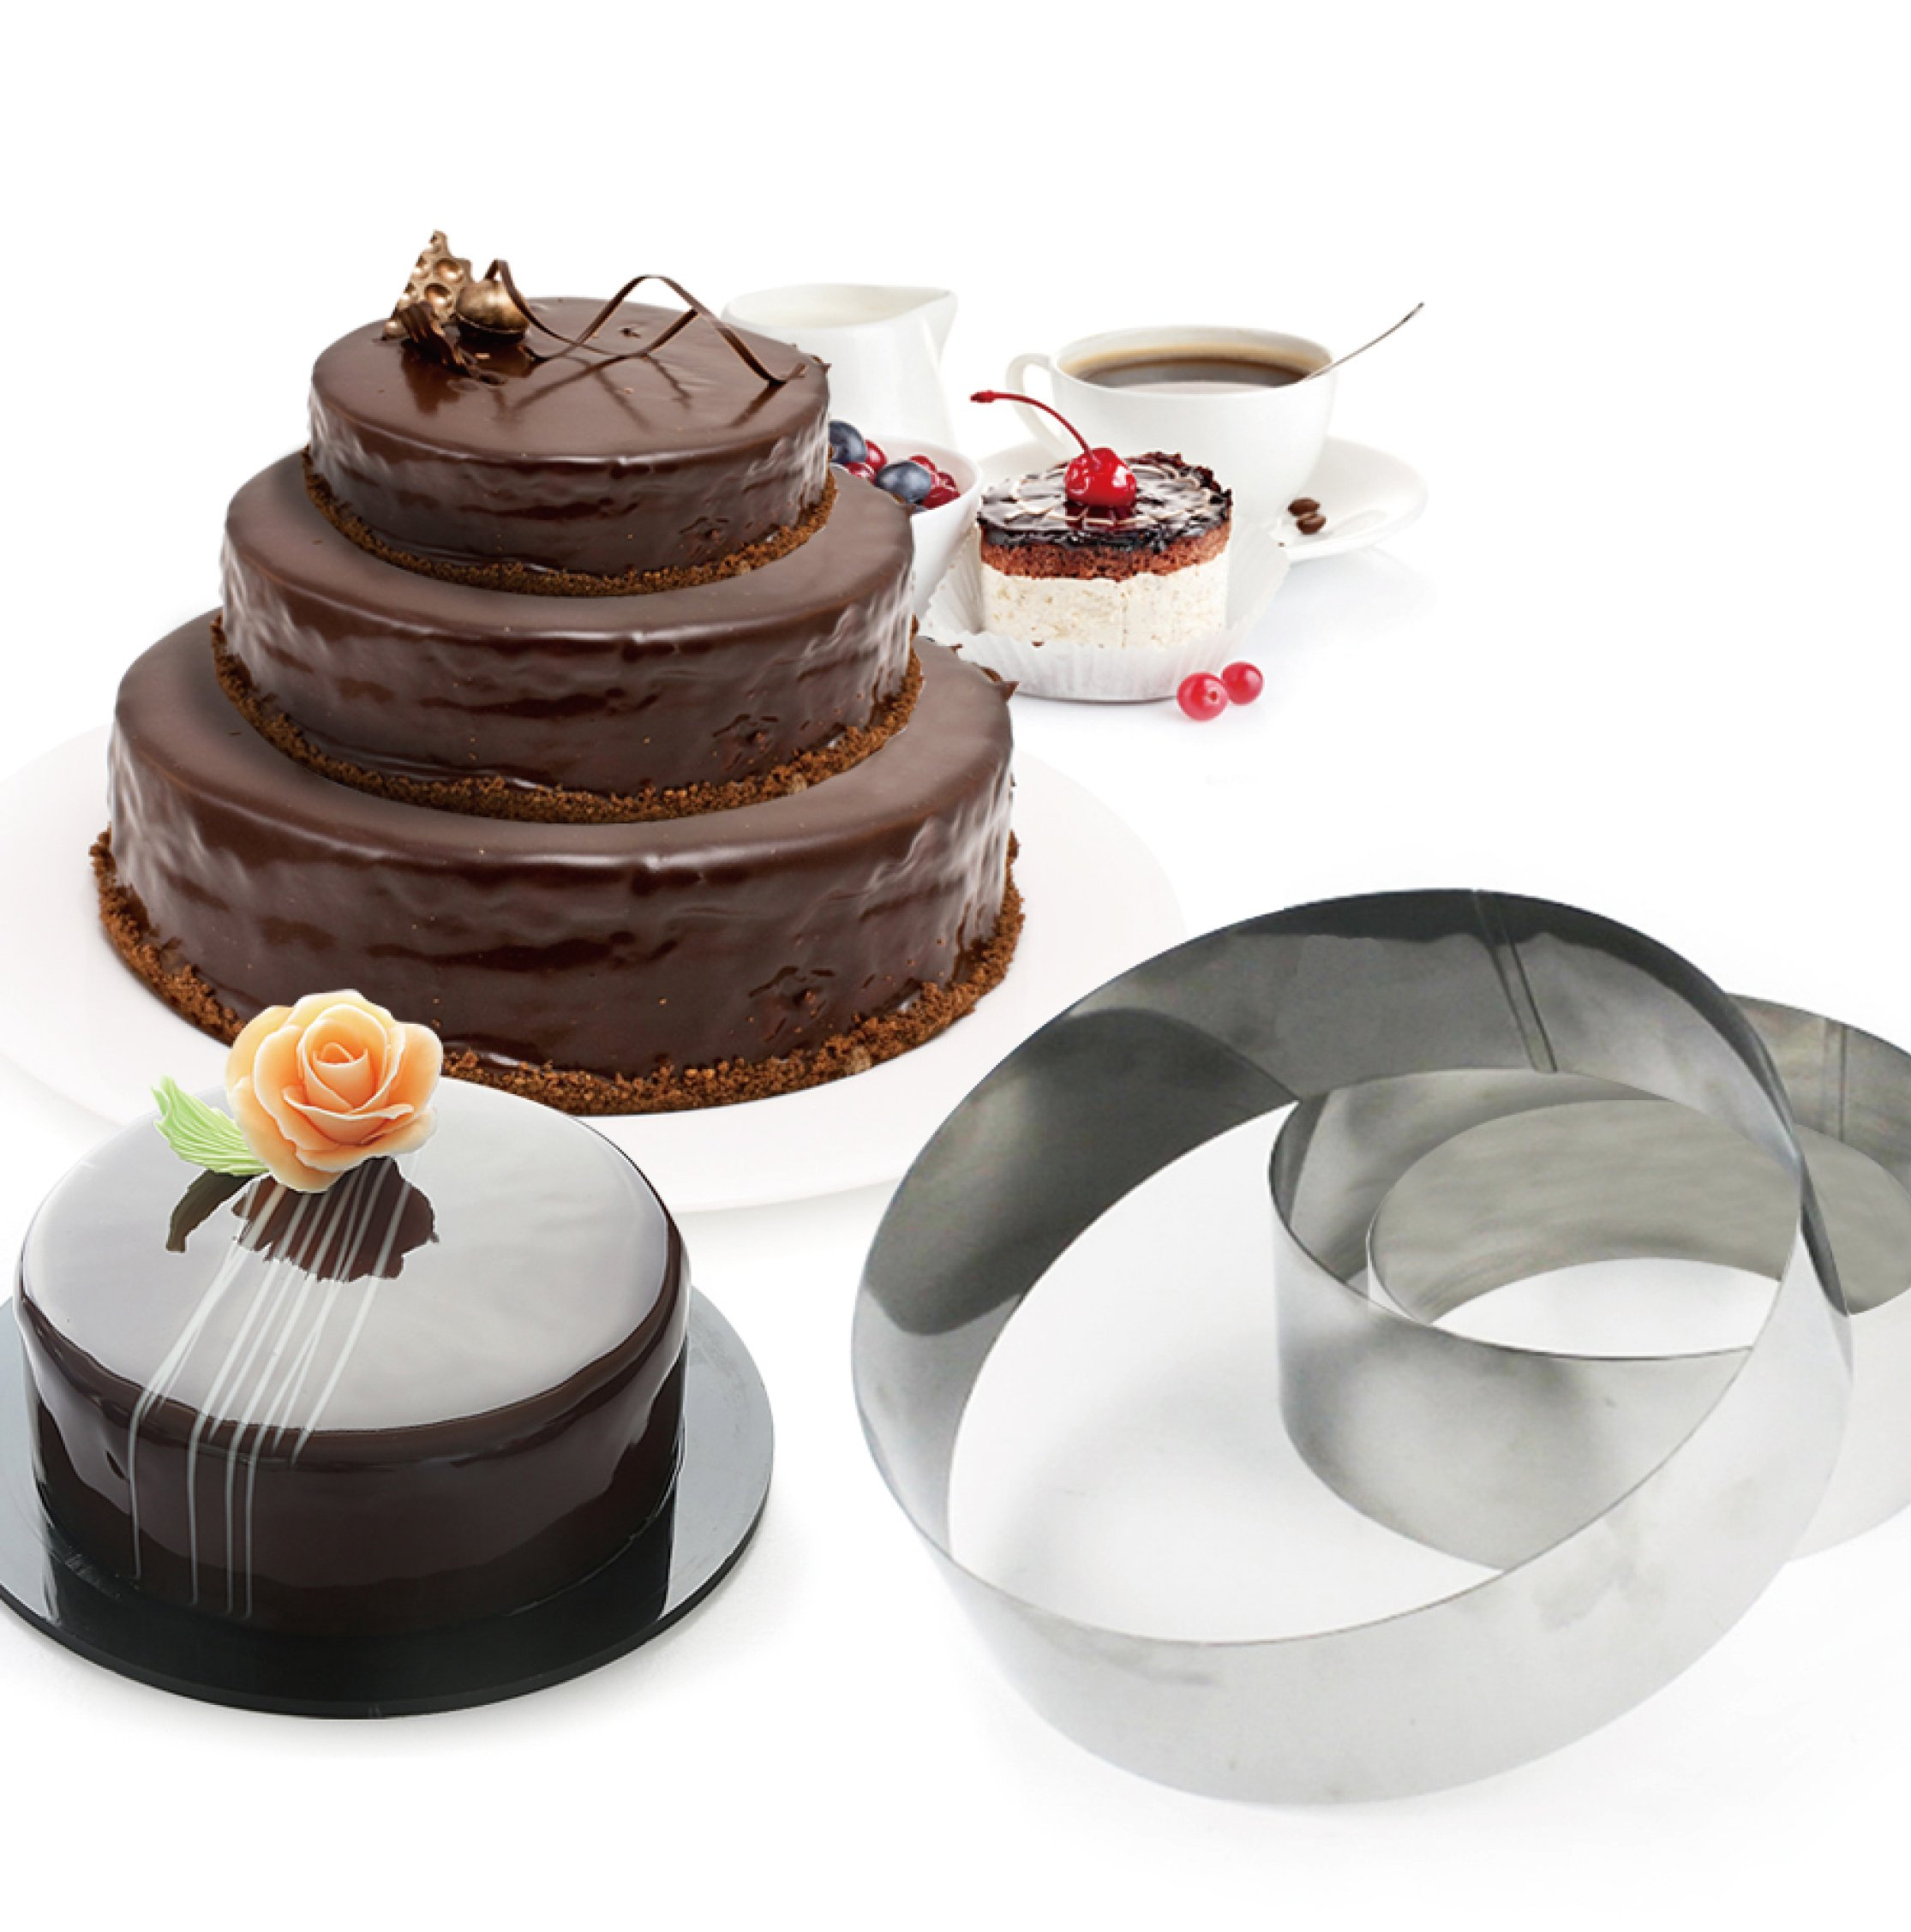 3 Tier Round Multilayer Anniversary Birthday Cake Baking Pans,Stainless Steel 3 Sizes Rings Round Molding Mousse Cake Rings(Round-shape,Set of 3) by FunWhale (Image #1)